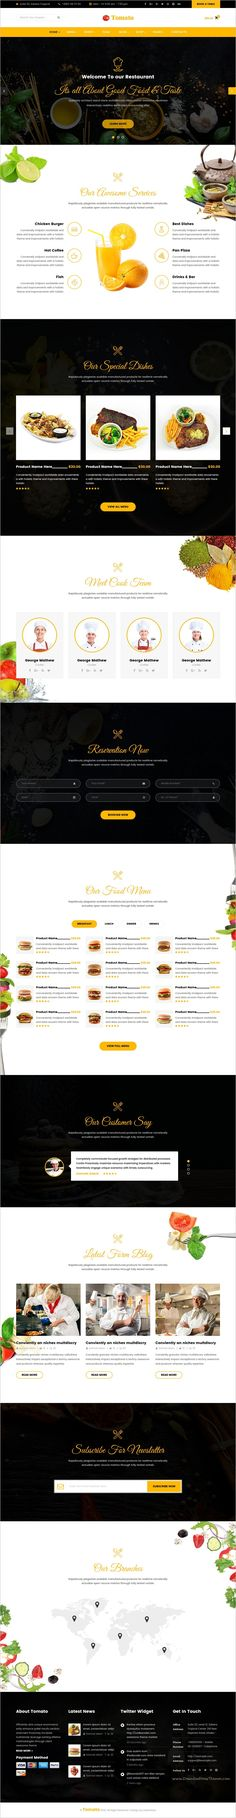 Tomato is a modern responsive #HTML #Bootstrap theme for #restaurant, cafe and fast food shops website with 3 unique homepage layouts download now➩  https://themeforest.net/item/tomatorestaurant-cafe-bar-and-food-shop-html-template/18710036?ref=Datasata